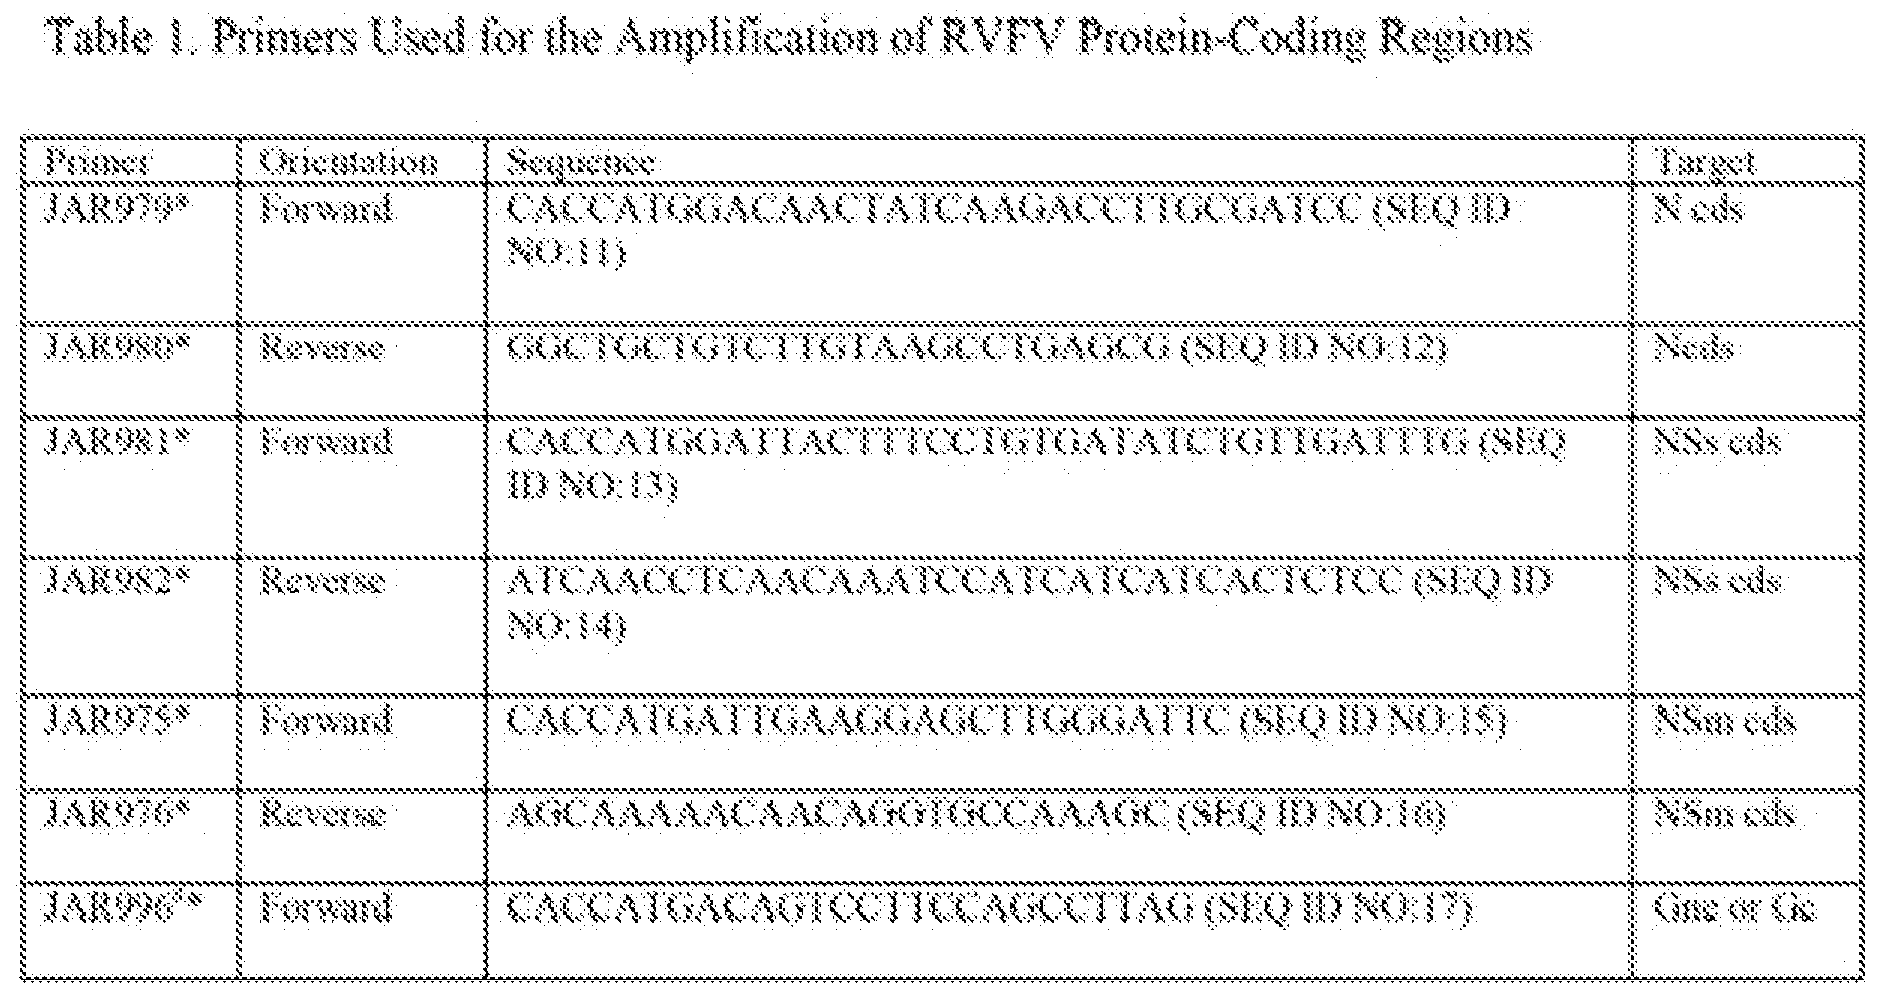 WO2014117185A1 - Rift valley fever virus glycoproteins, gn